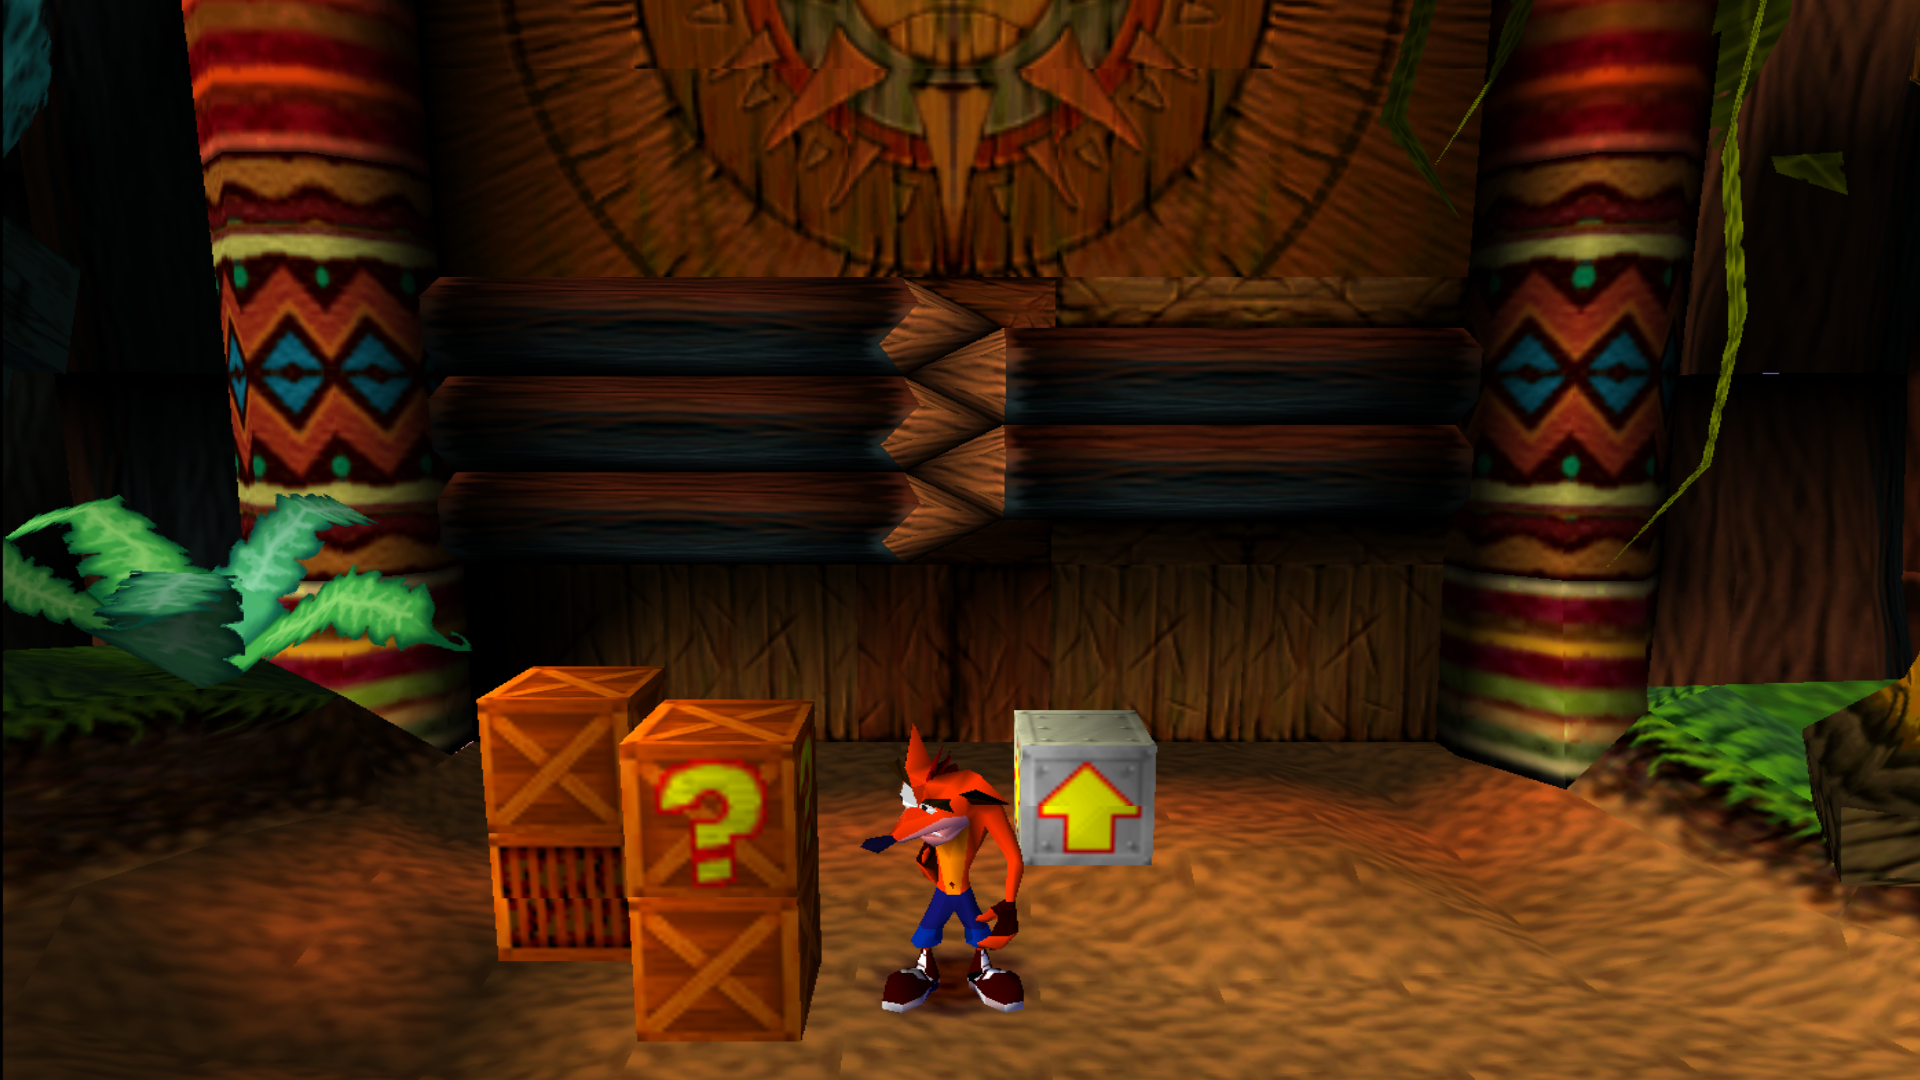 Crash Bandicoot 1 in the Native Fortress level